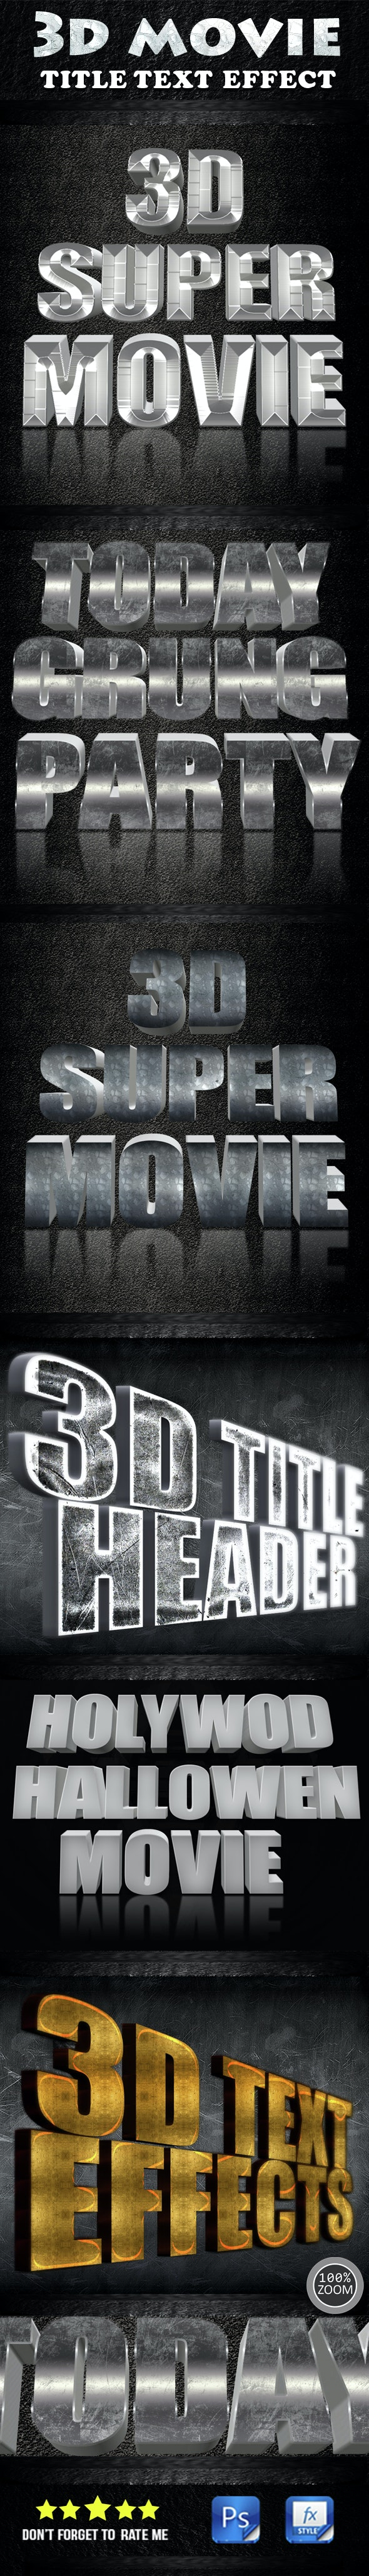 3D Movie Title Text Effect - Text Effects Styles